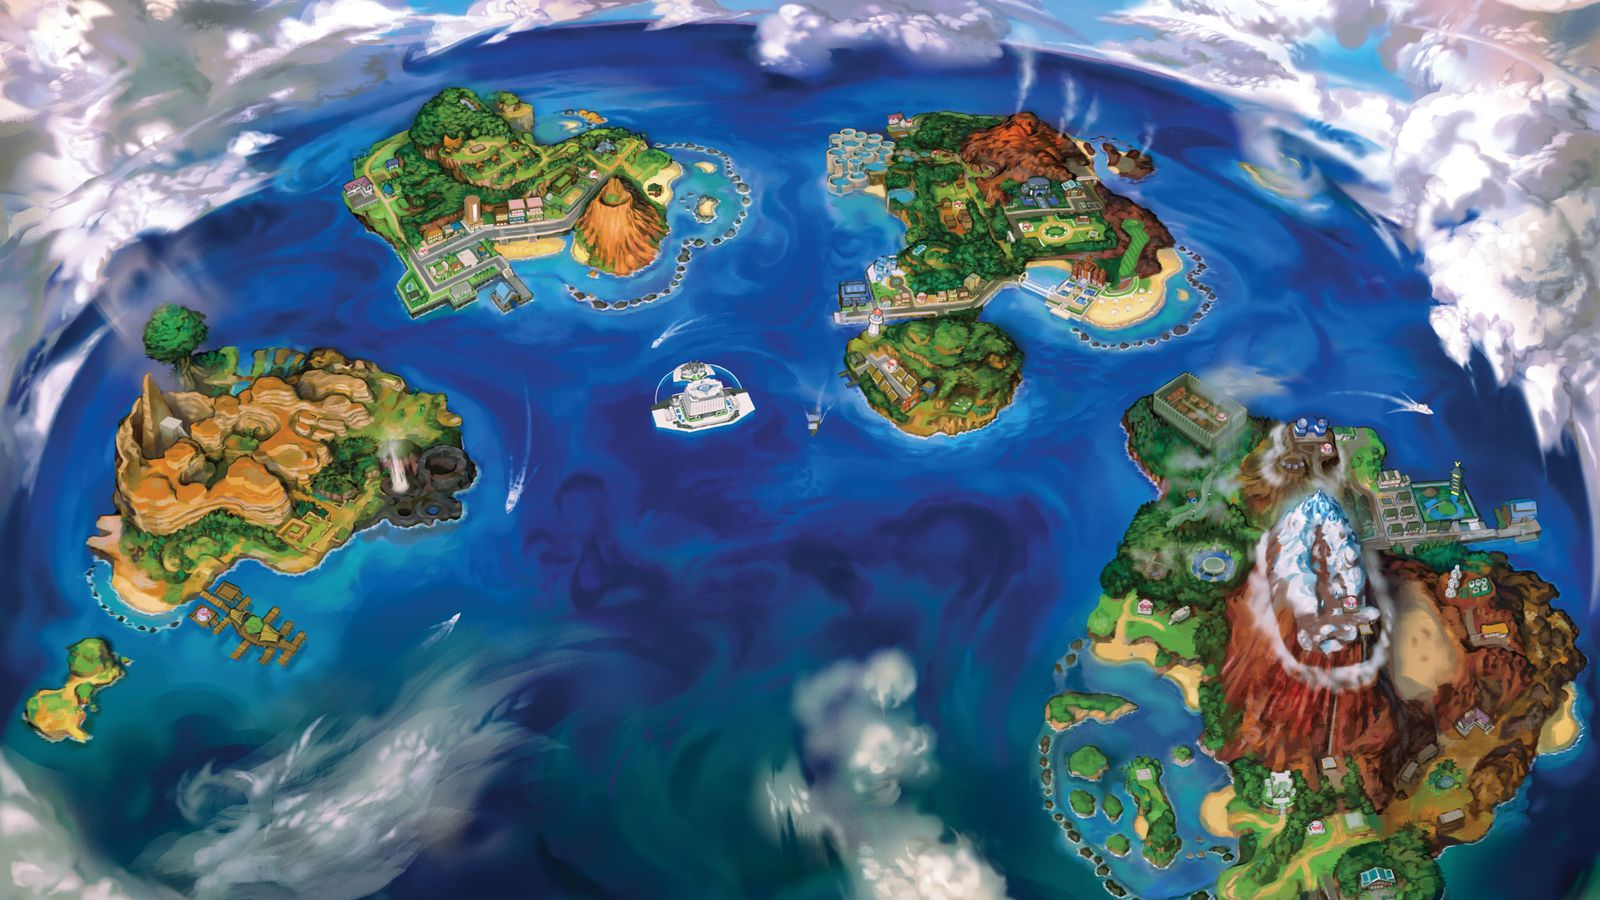 Alola_Region_Map_final_RGB_1920px.0.0.jpg (1600×900)